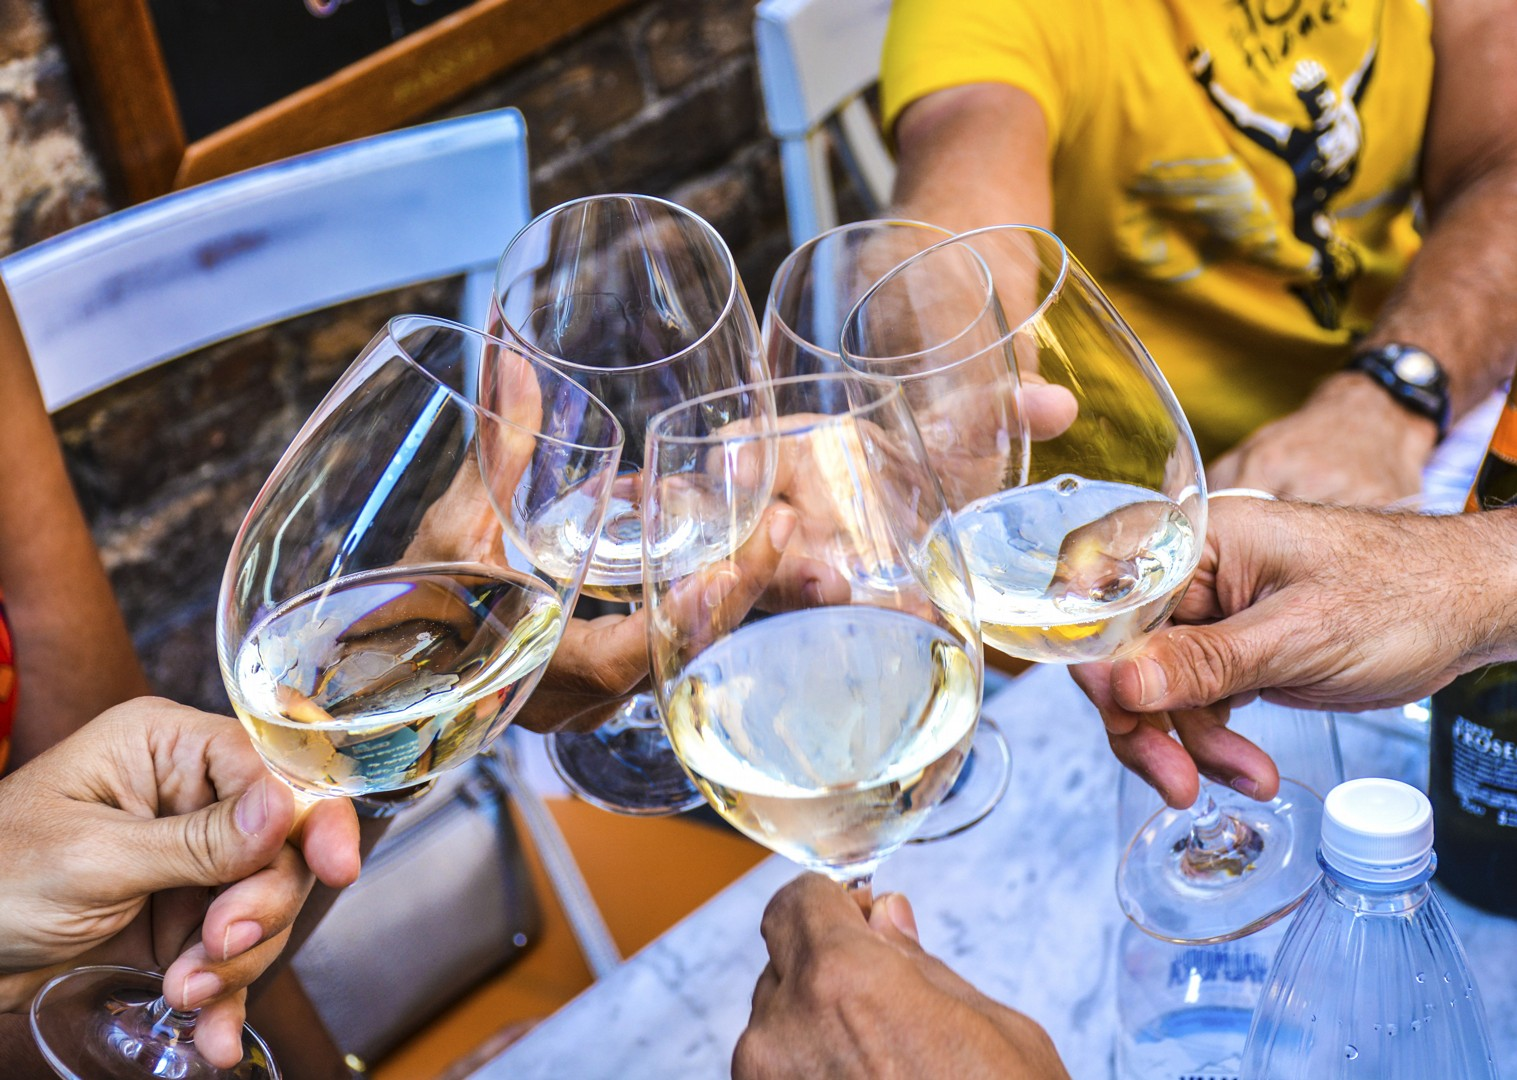 white-wine-traditional-italy-fine-food-cycling-tour.jpg - Italy - Classic Tuscany - Self-Guided Leisure Cycling Holiday - Italia Leisure and Family Cycling